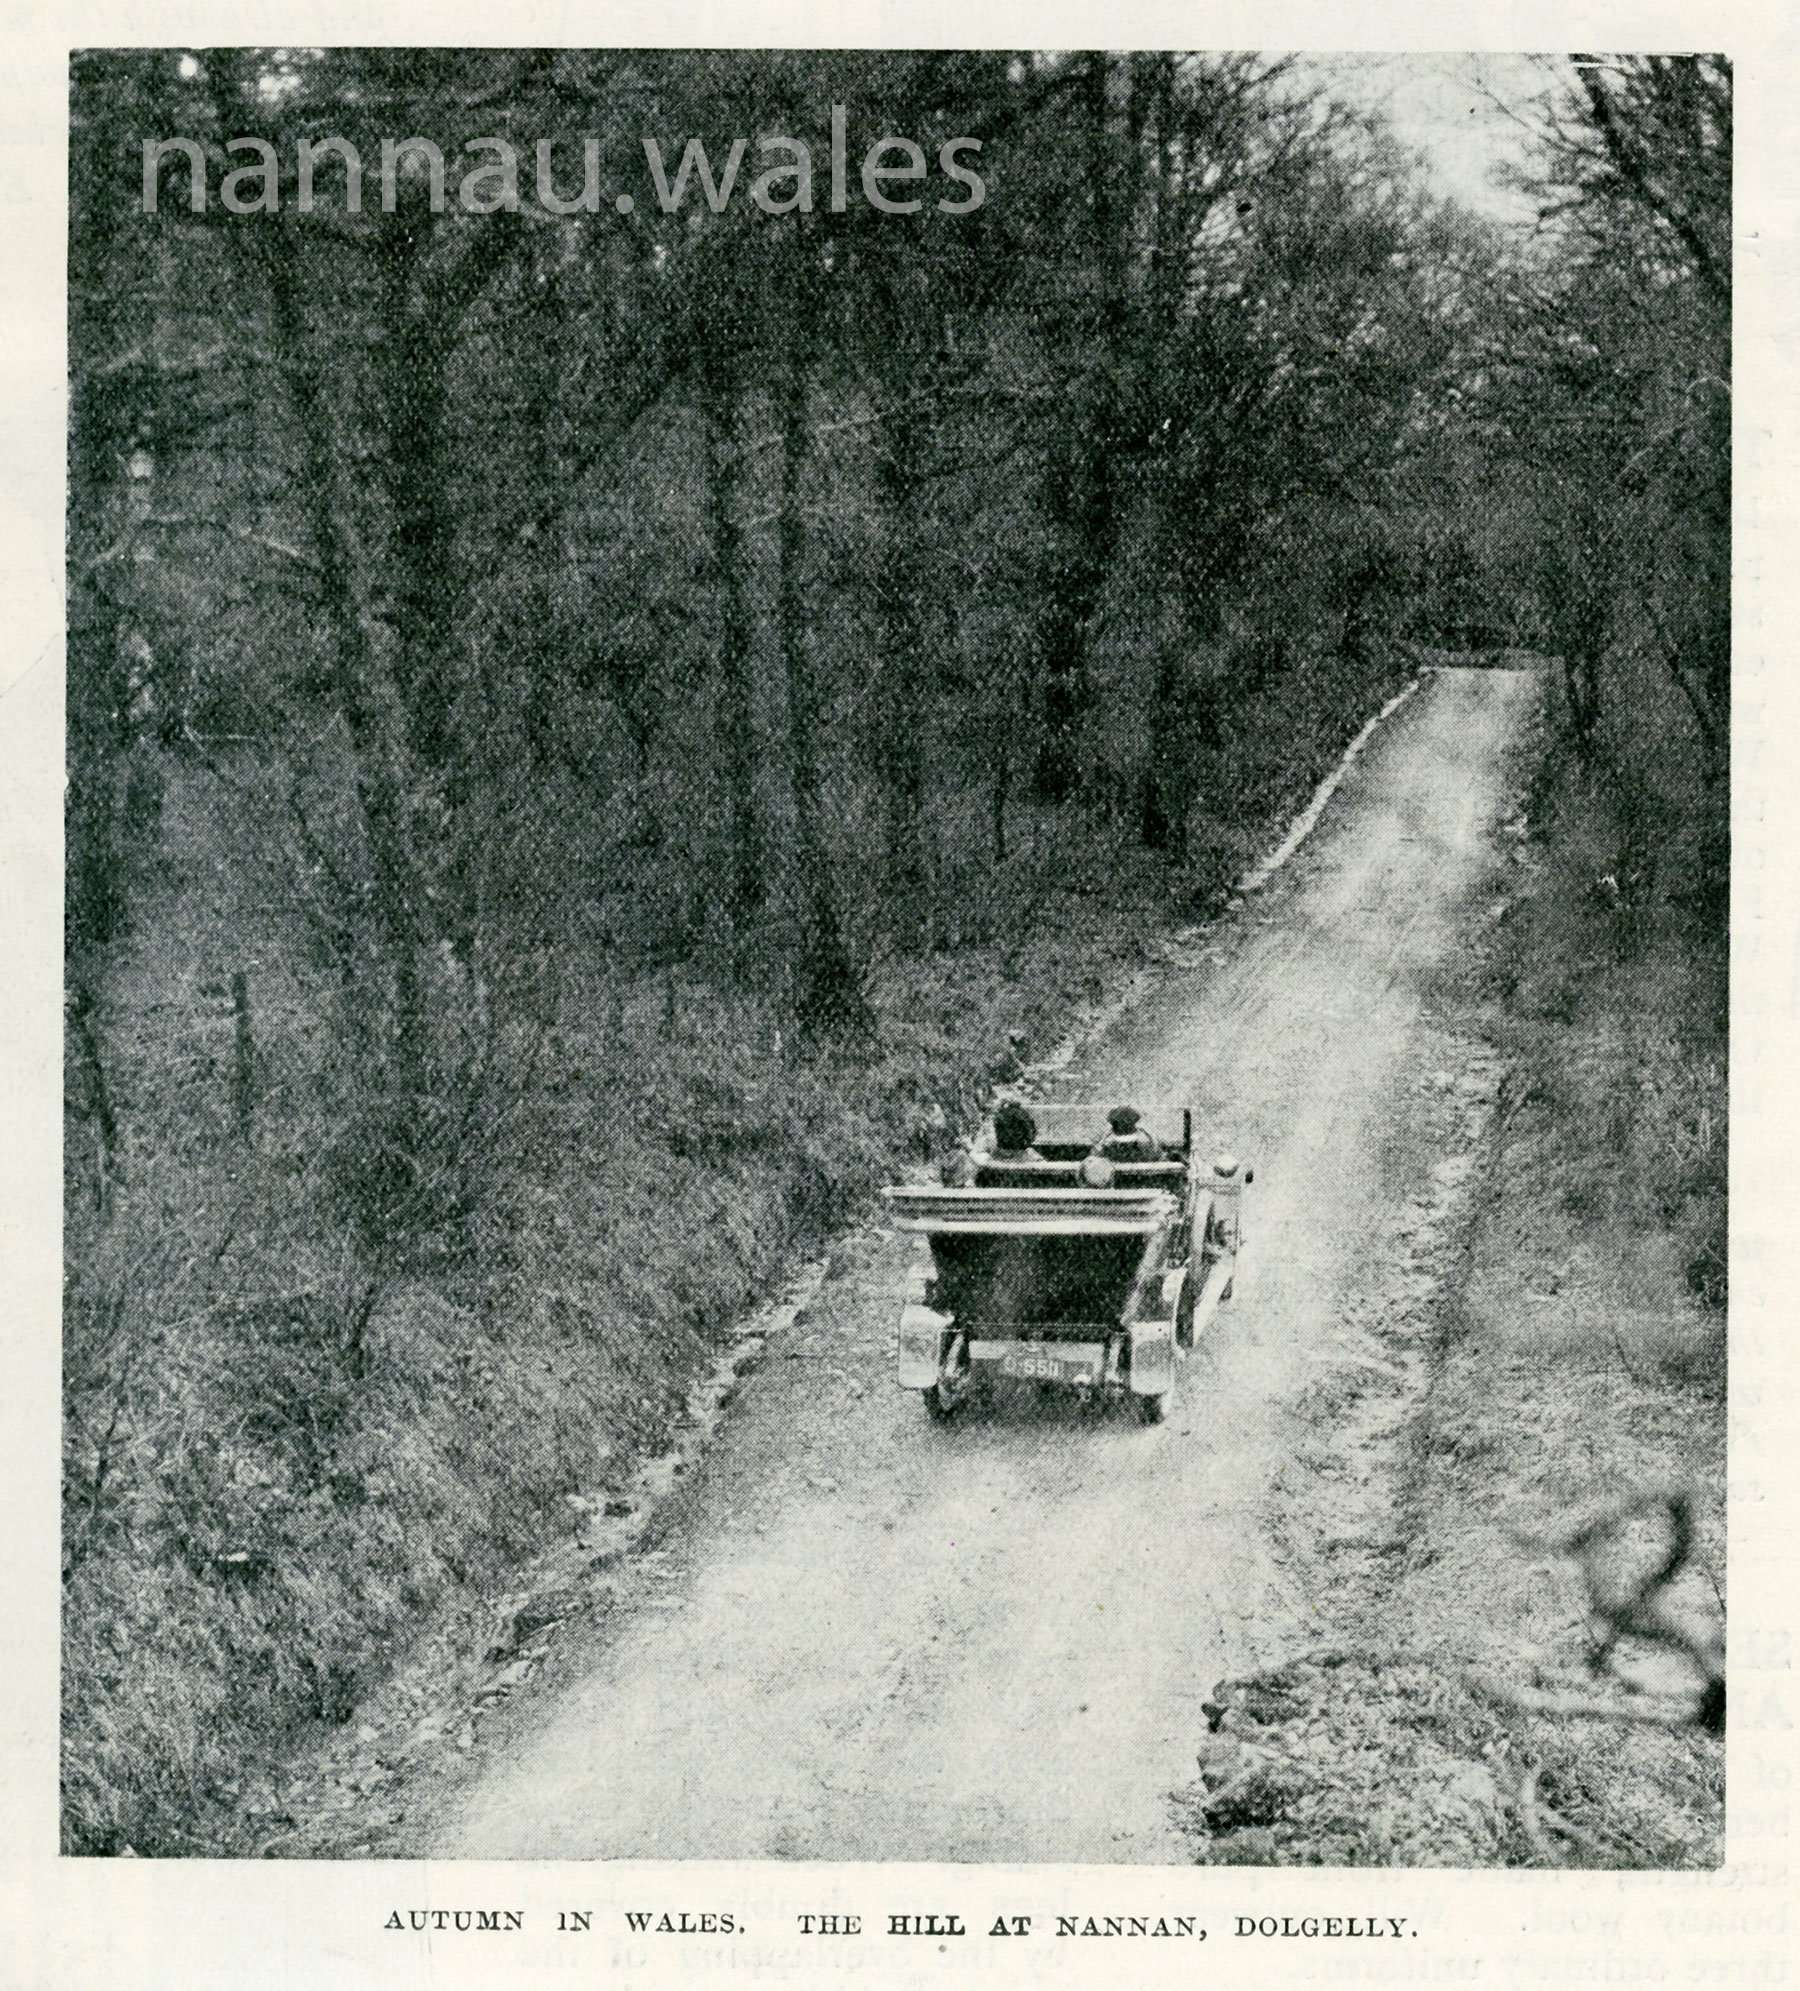 Autumn in Wales - The Hill at Nannau - The Weekly Magazine from 1915